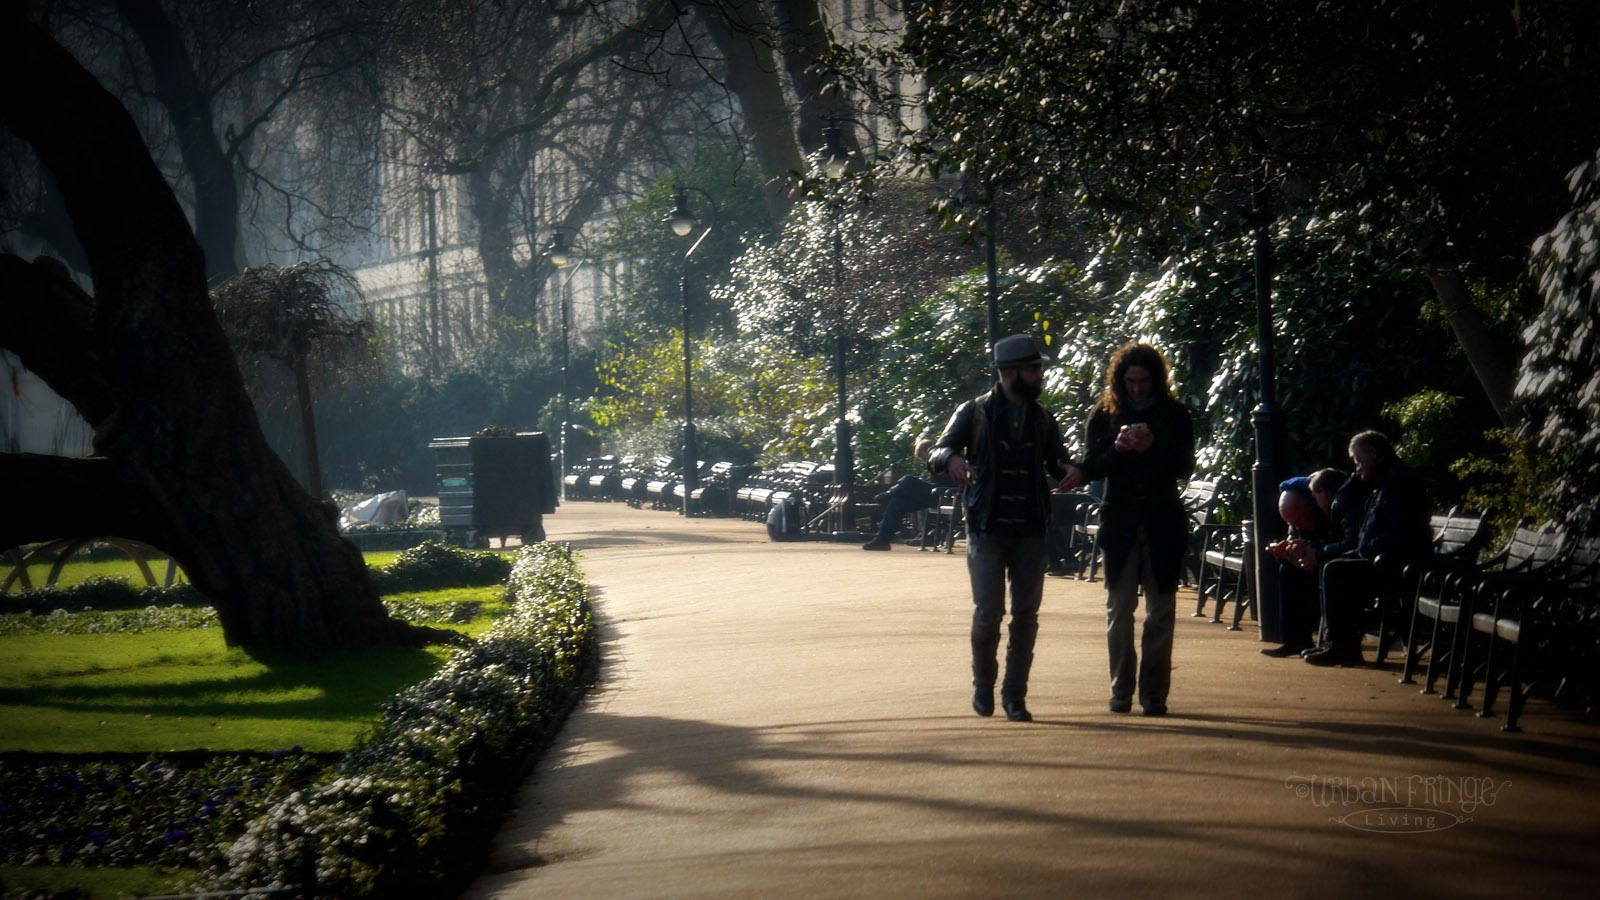 Photo Blog – The Sights and Streets of London | Urban Fringe Living